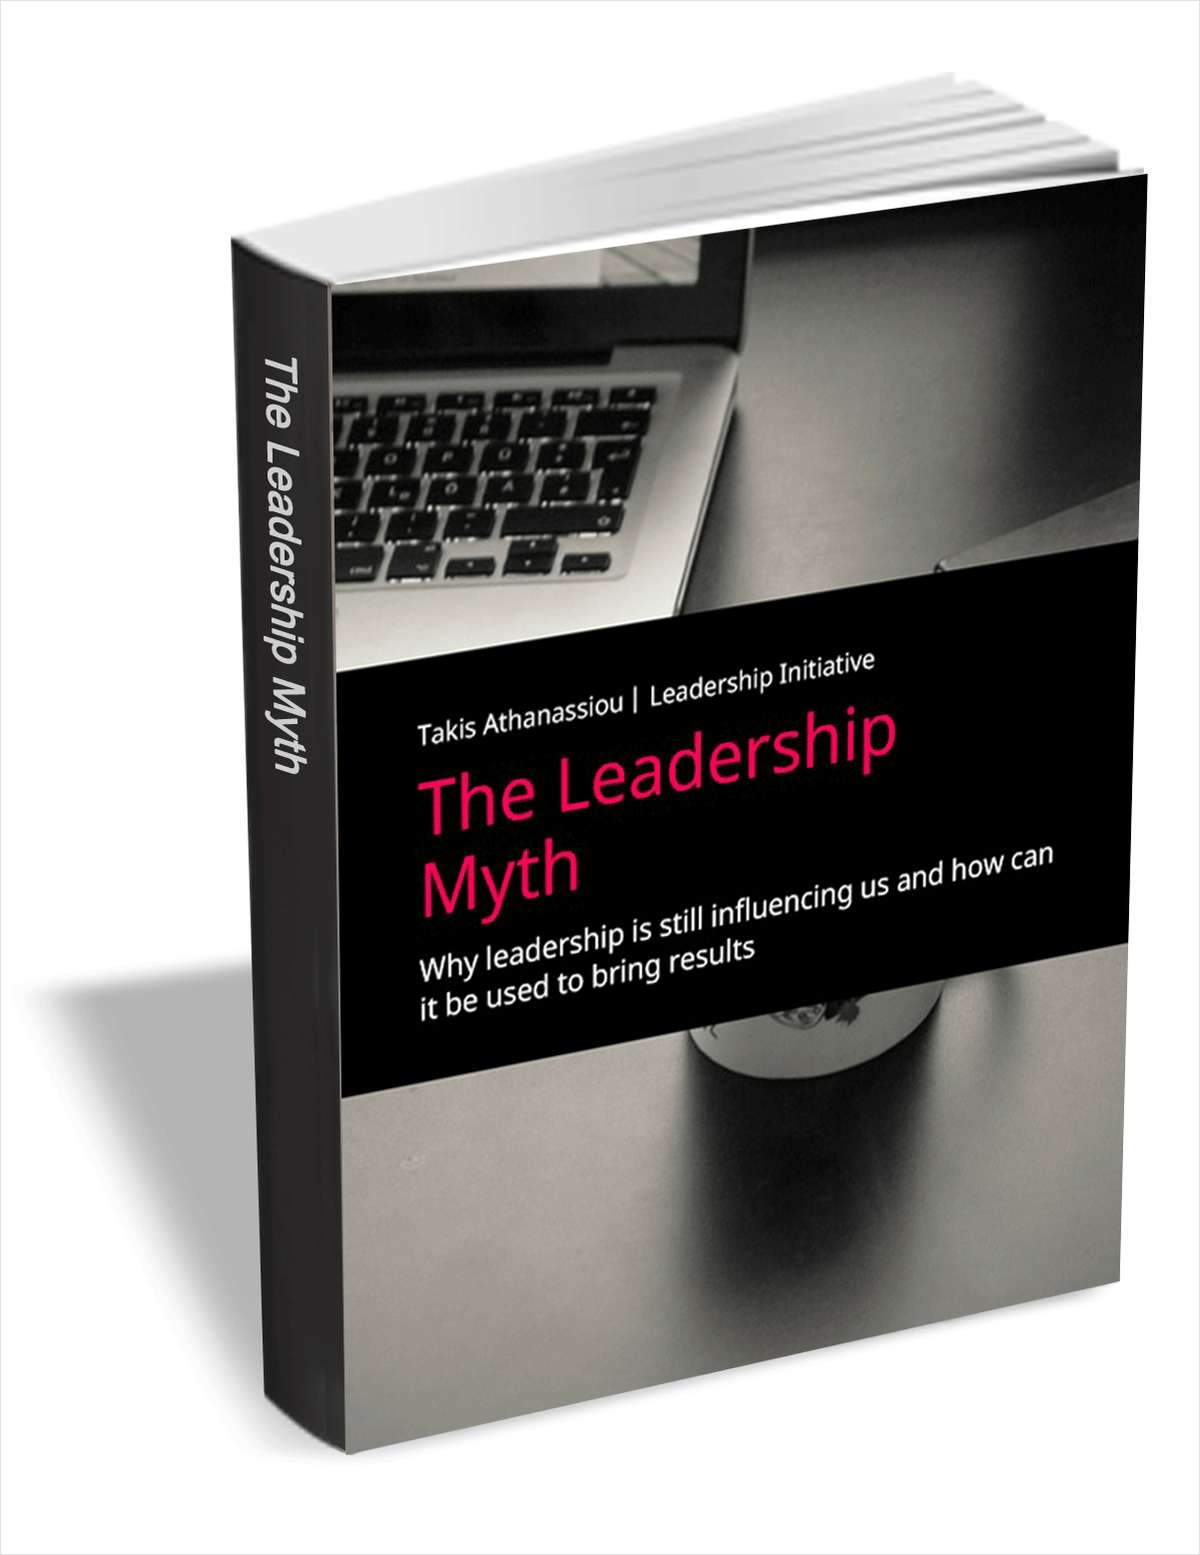 The Leadership Myth